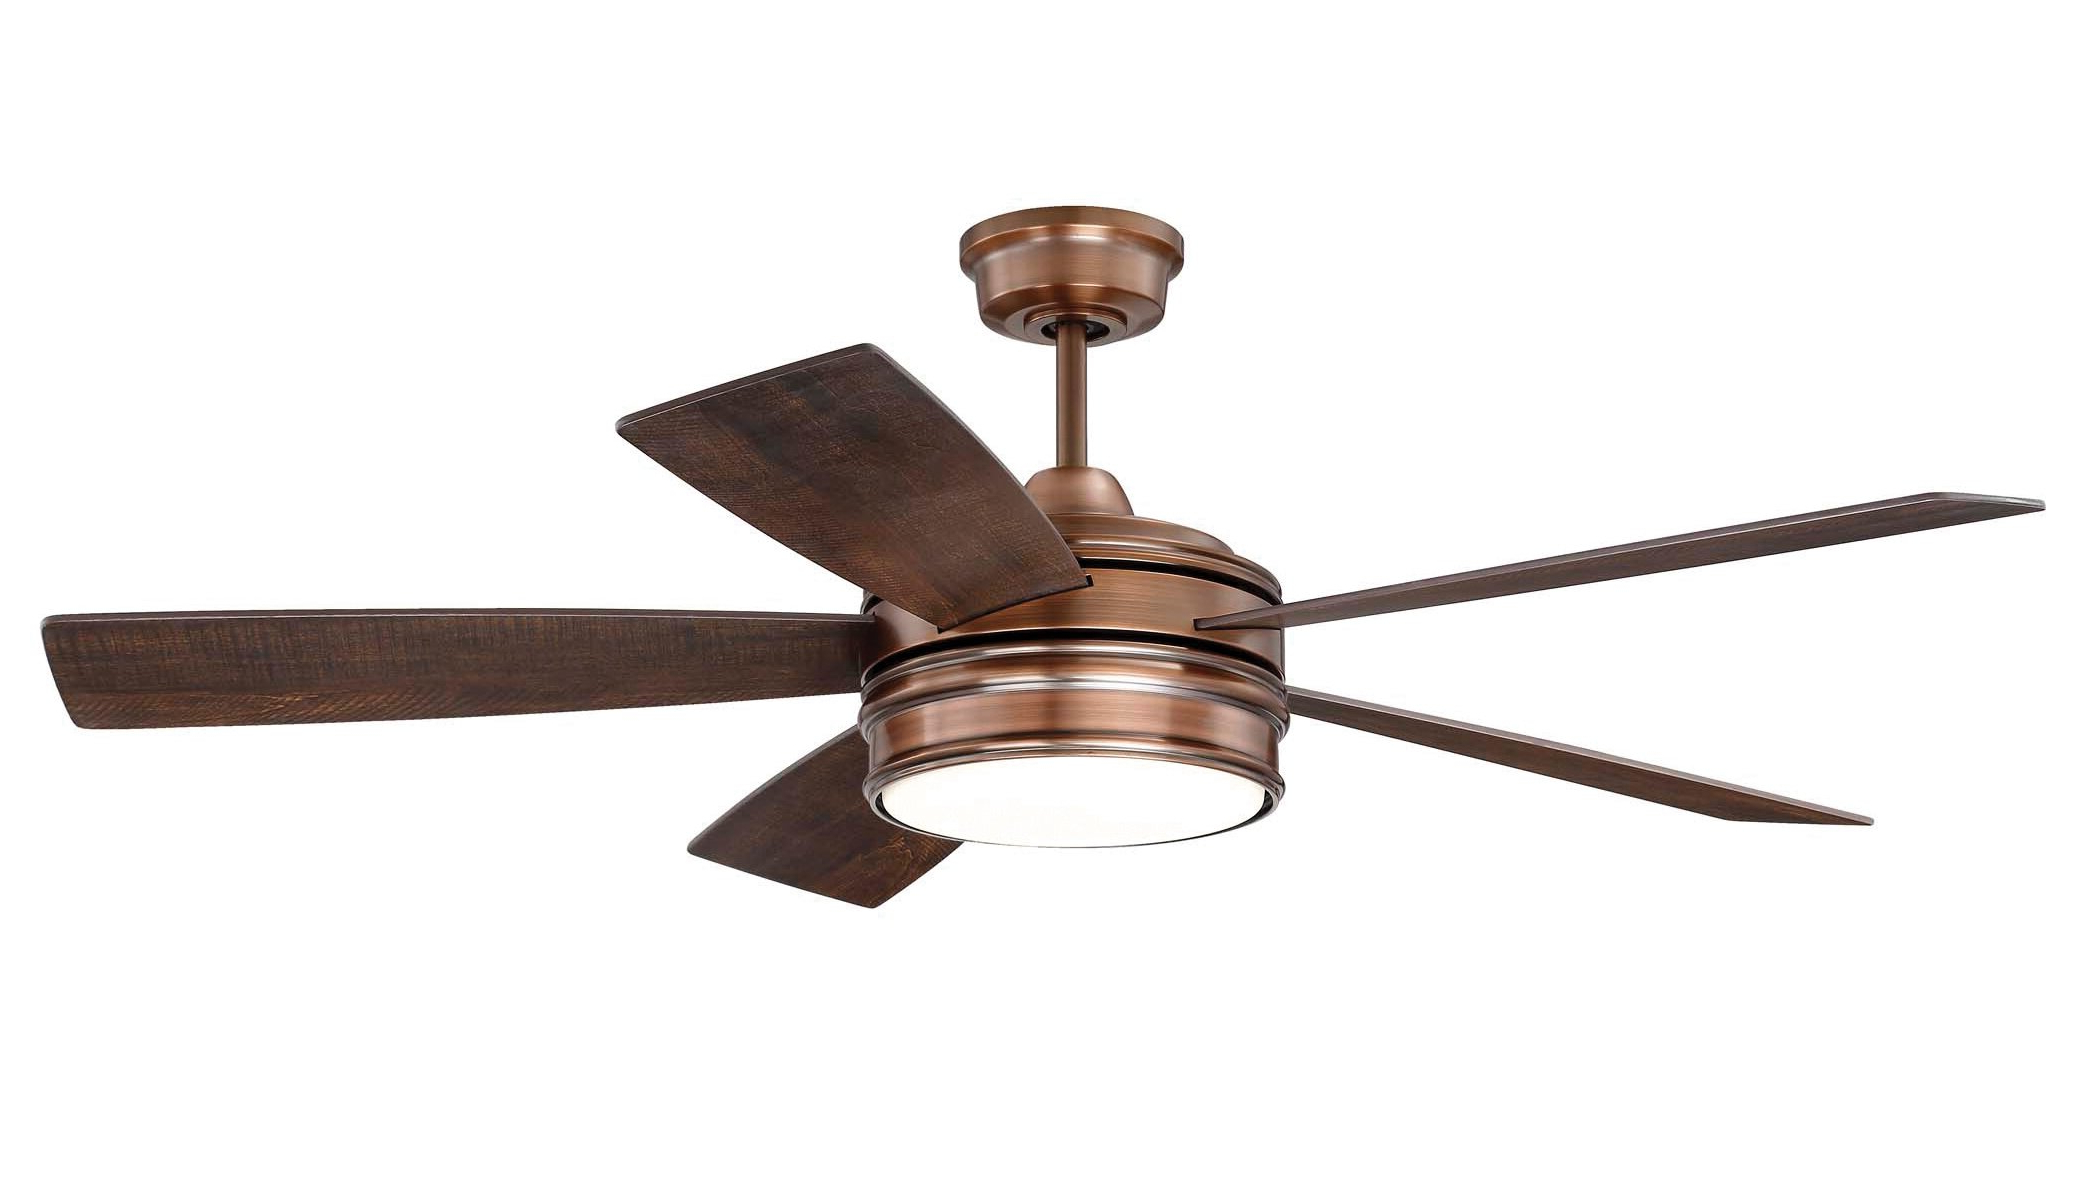 "Widely Used 52"" Winchcombe 5 Blade Led Ceiling Fan With Remote Light Kit Pertaining To Ronan 3 Blade Ceiling Fans (View 12 of 20)"